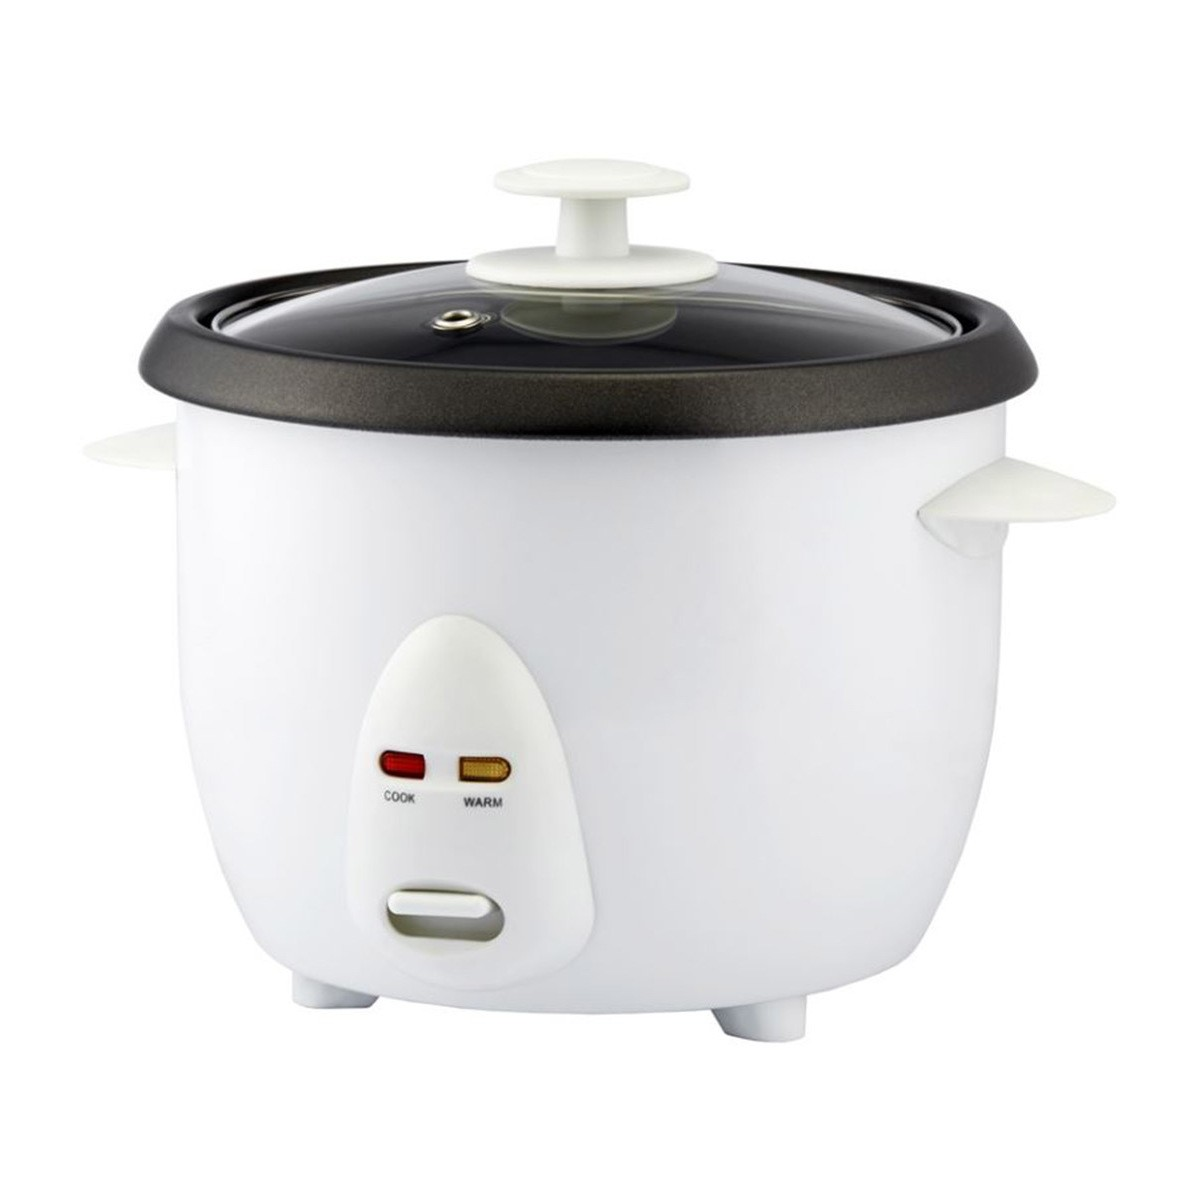 Big W Pressure Cooker B Home 5 Cup Rice Cooker Cfxb22g